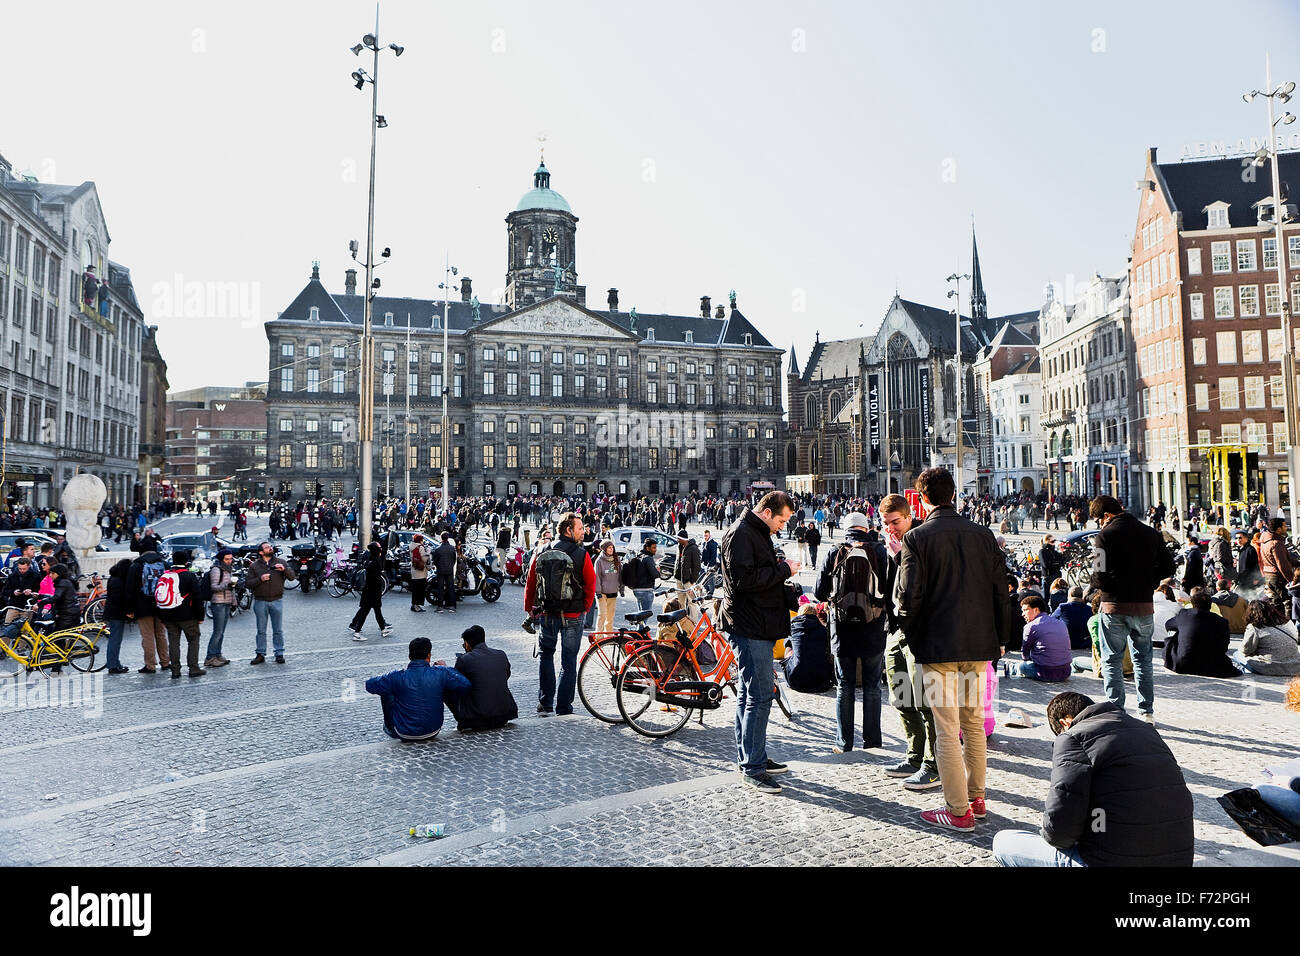 Image Of Crowds Of People In Dam Square Amsterdam At